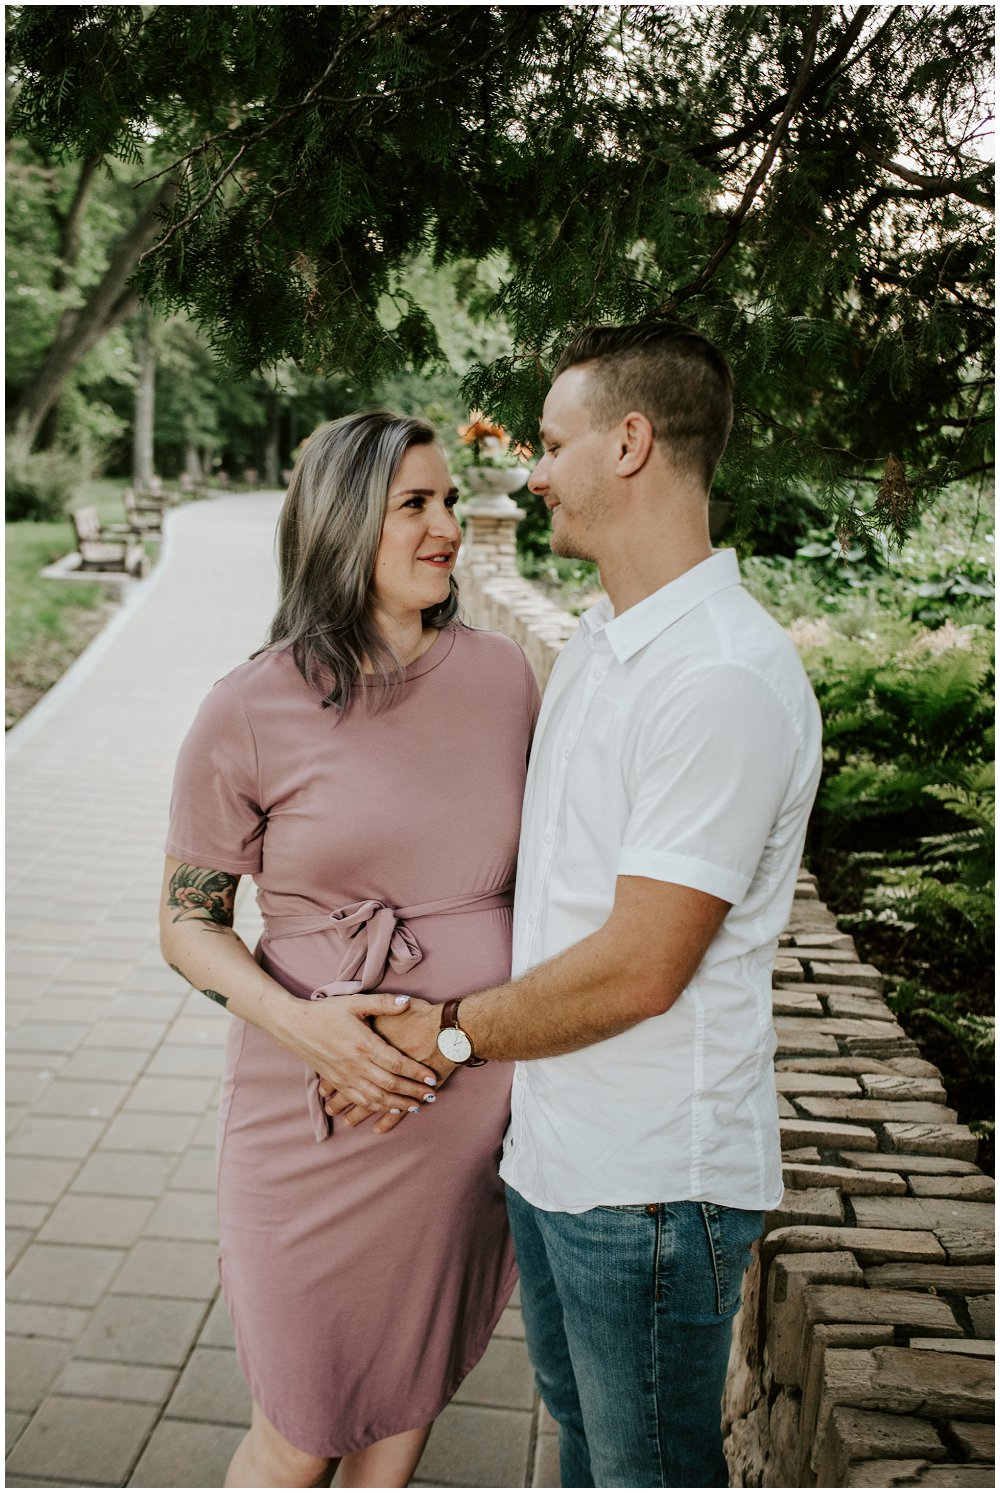 cara and harrison assiniboine park Winnipeg Manitoba Maternity Photographer